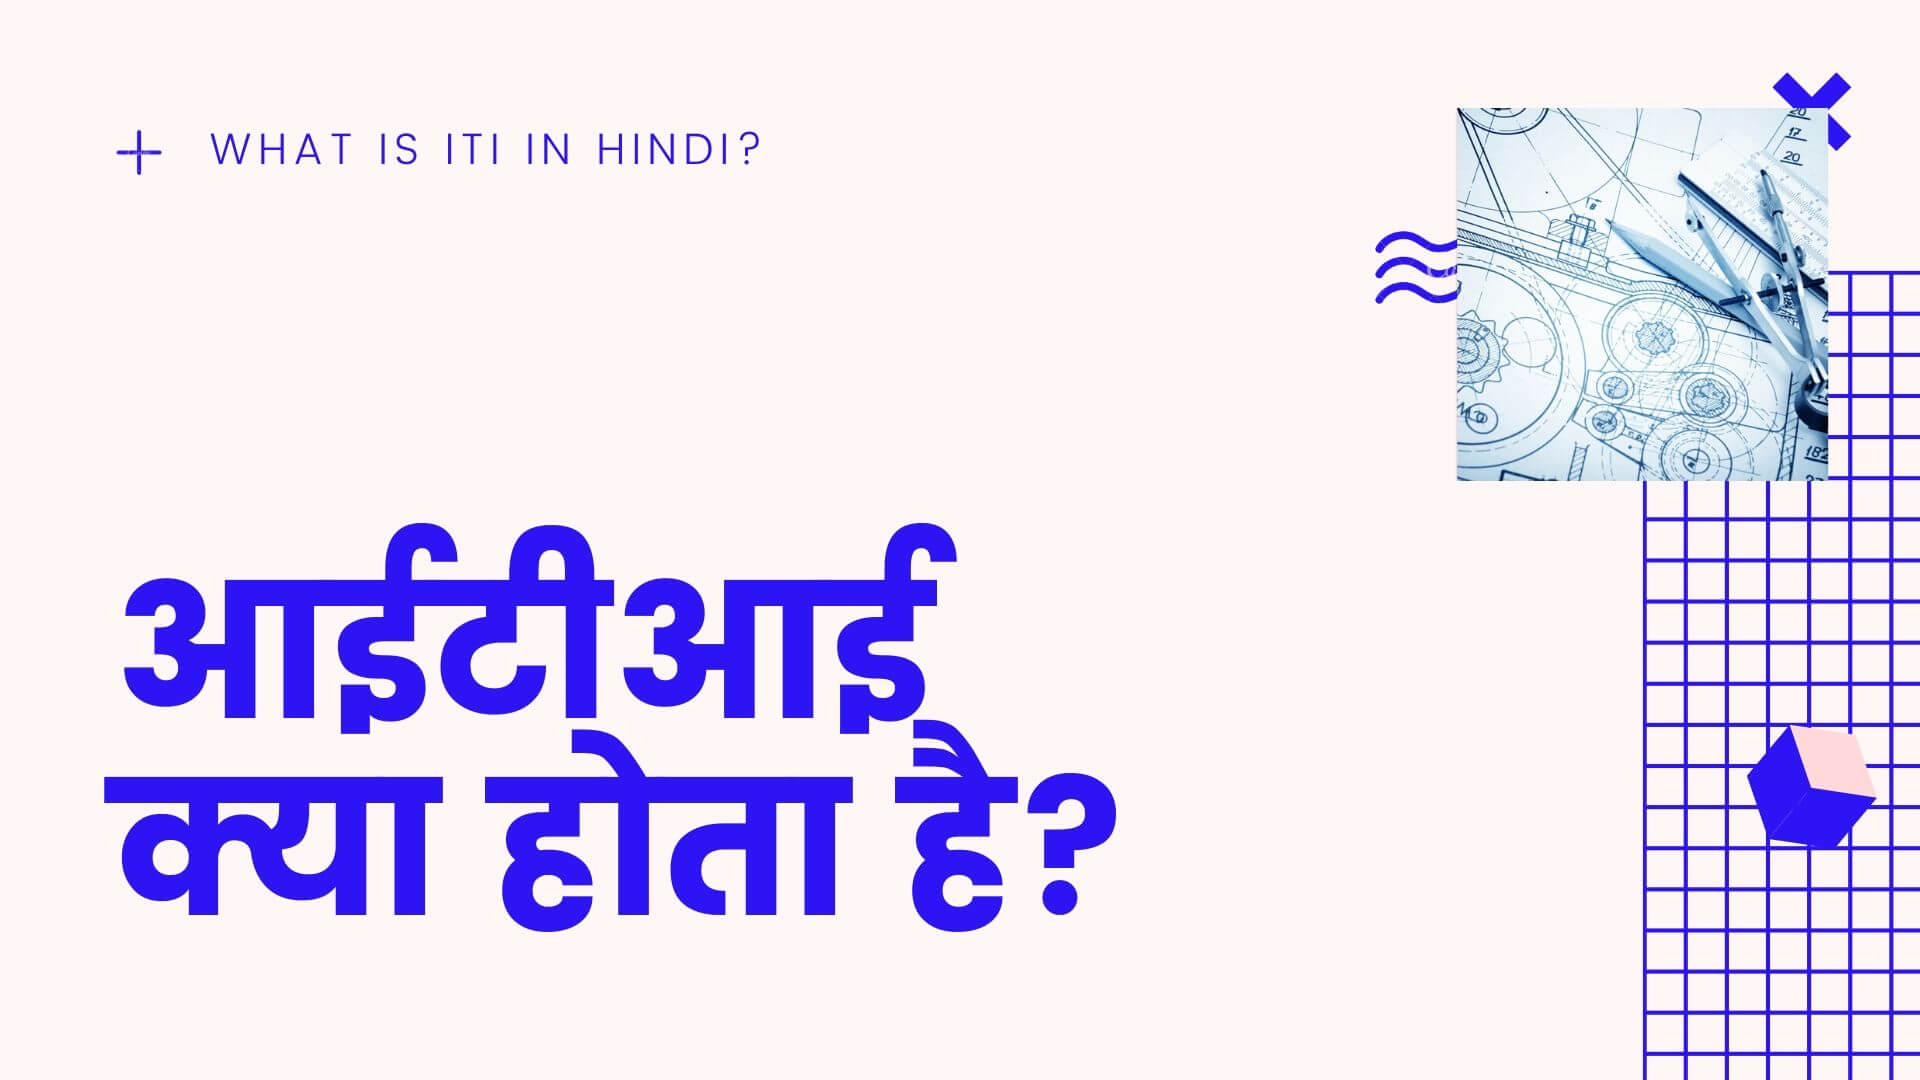 what is iti in hindi